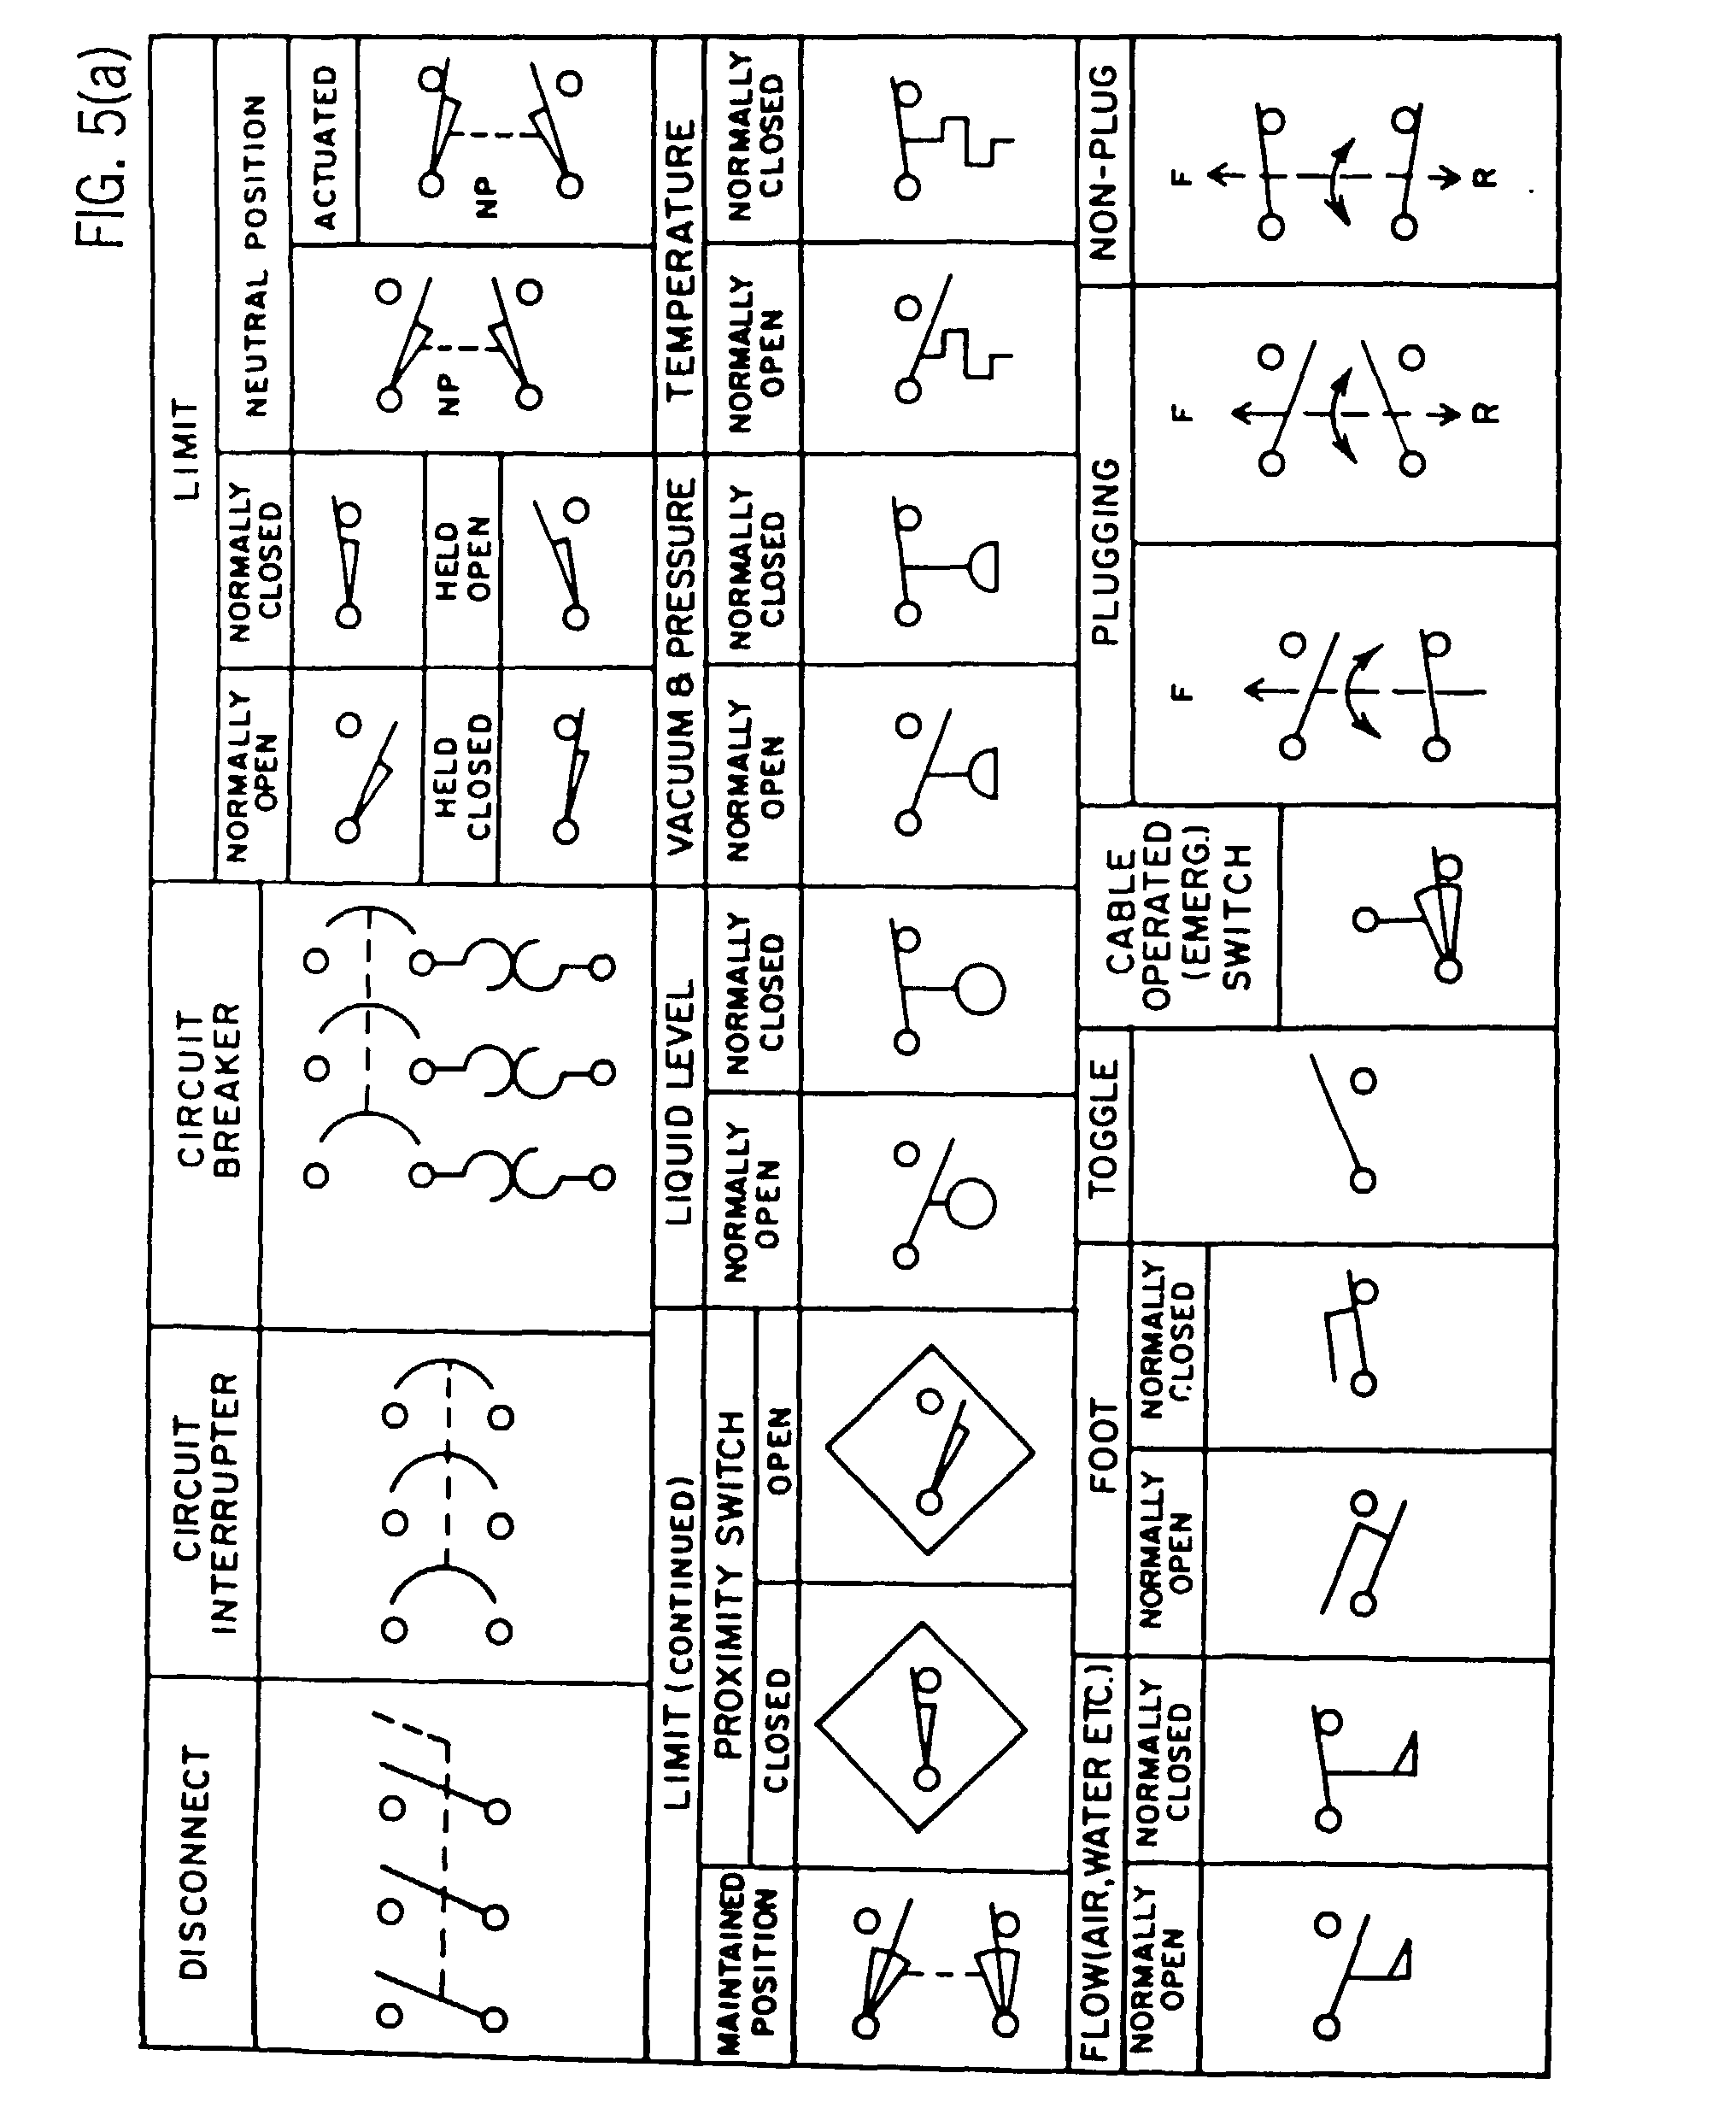 nema electrical schematic symbols